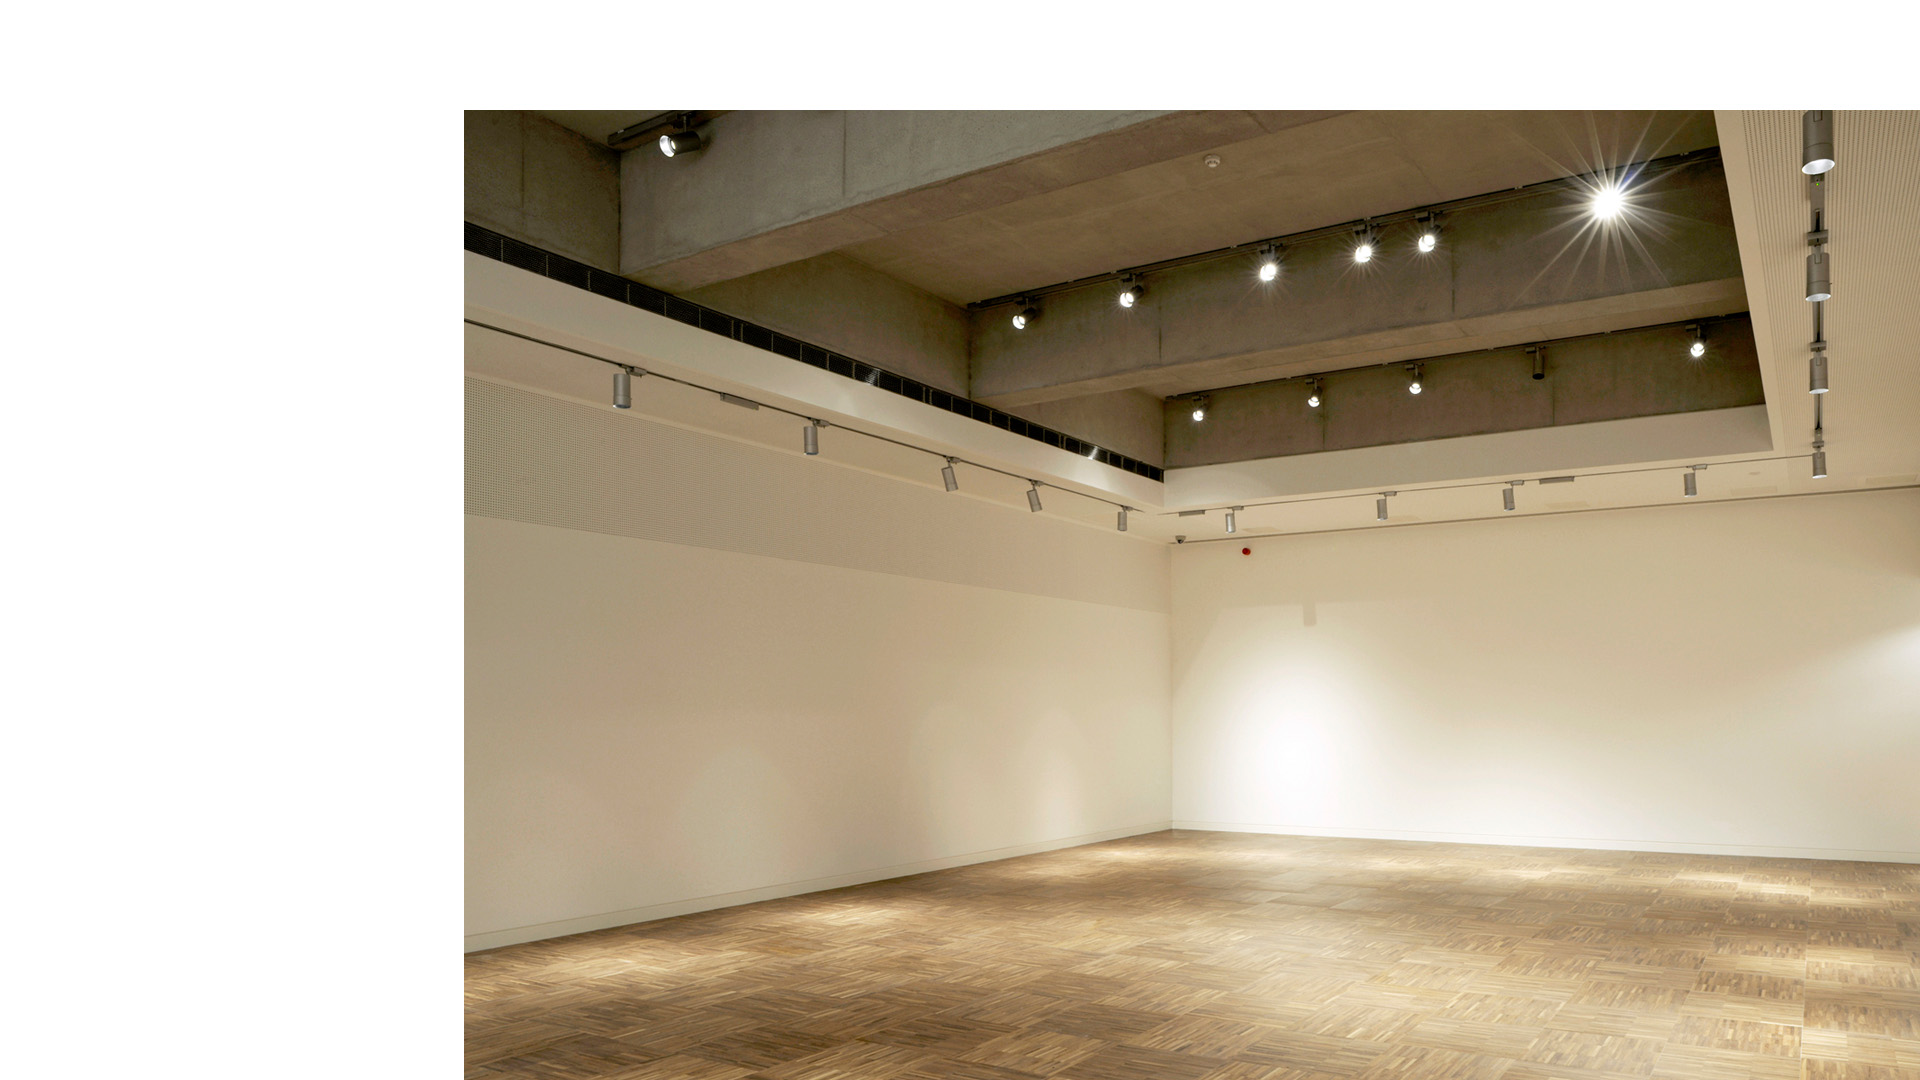 Interior of the Novium's top floor gallery before exhibition fit out